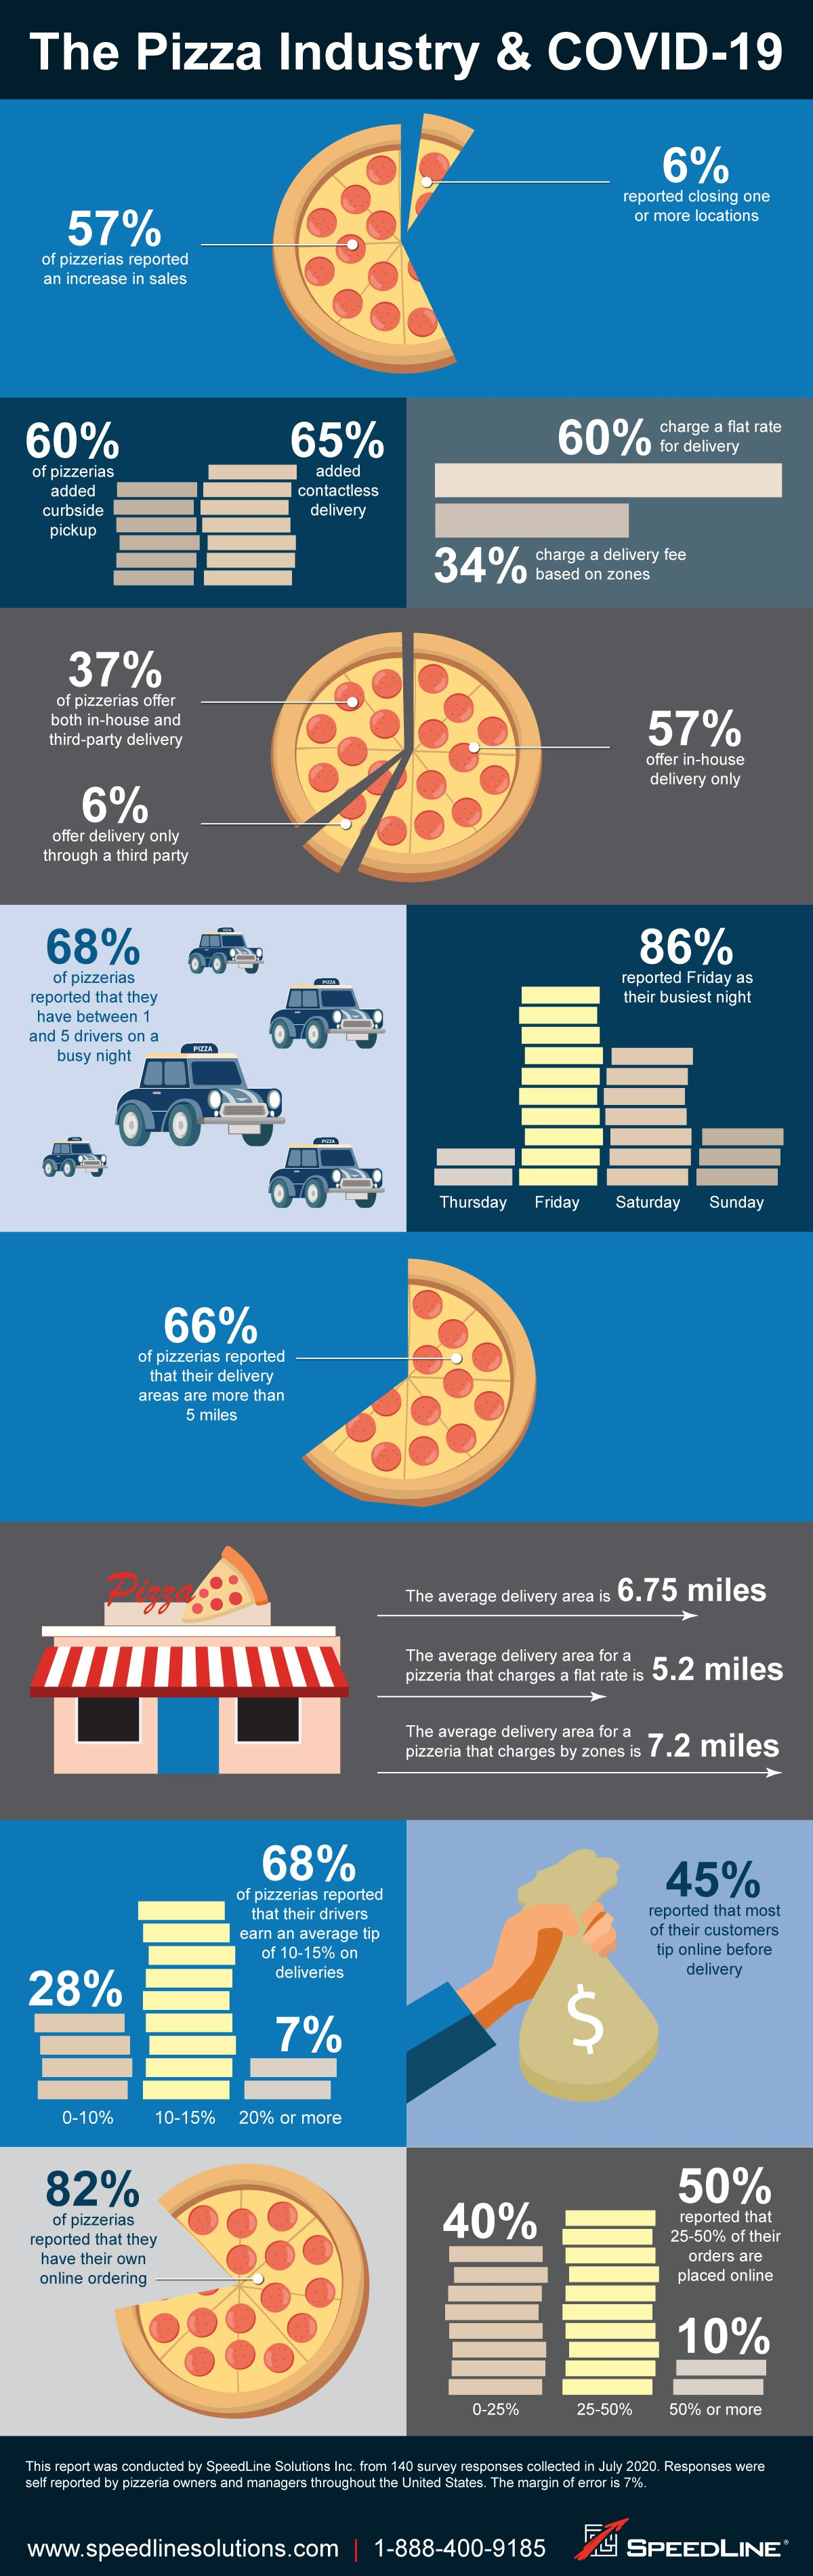 Results of the survey, showing that 57% of pizzerias reported an increase in sales following COVID-19